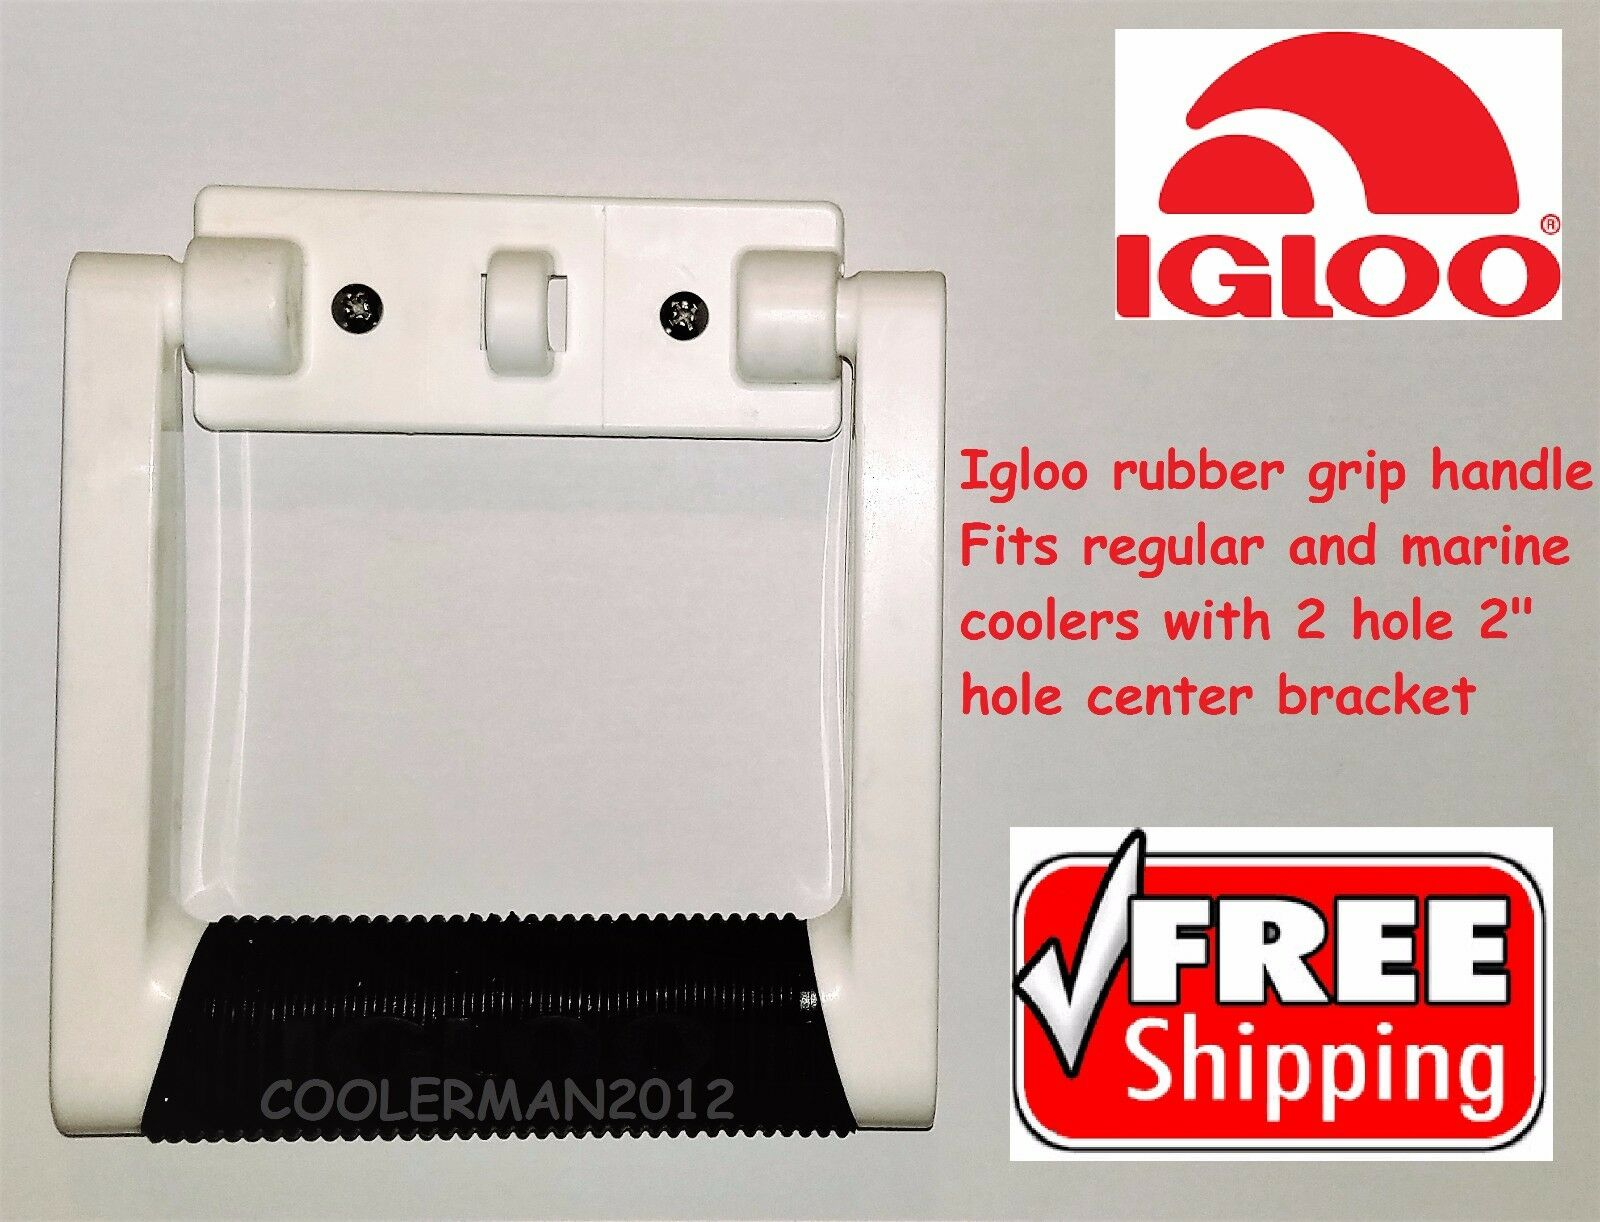 igloo rubber grip 9647rg genuine cooler parts replacement handle igl